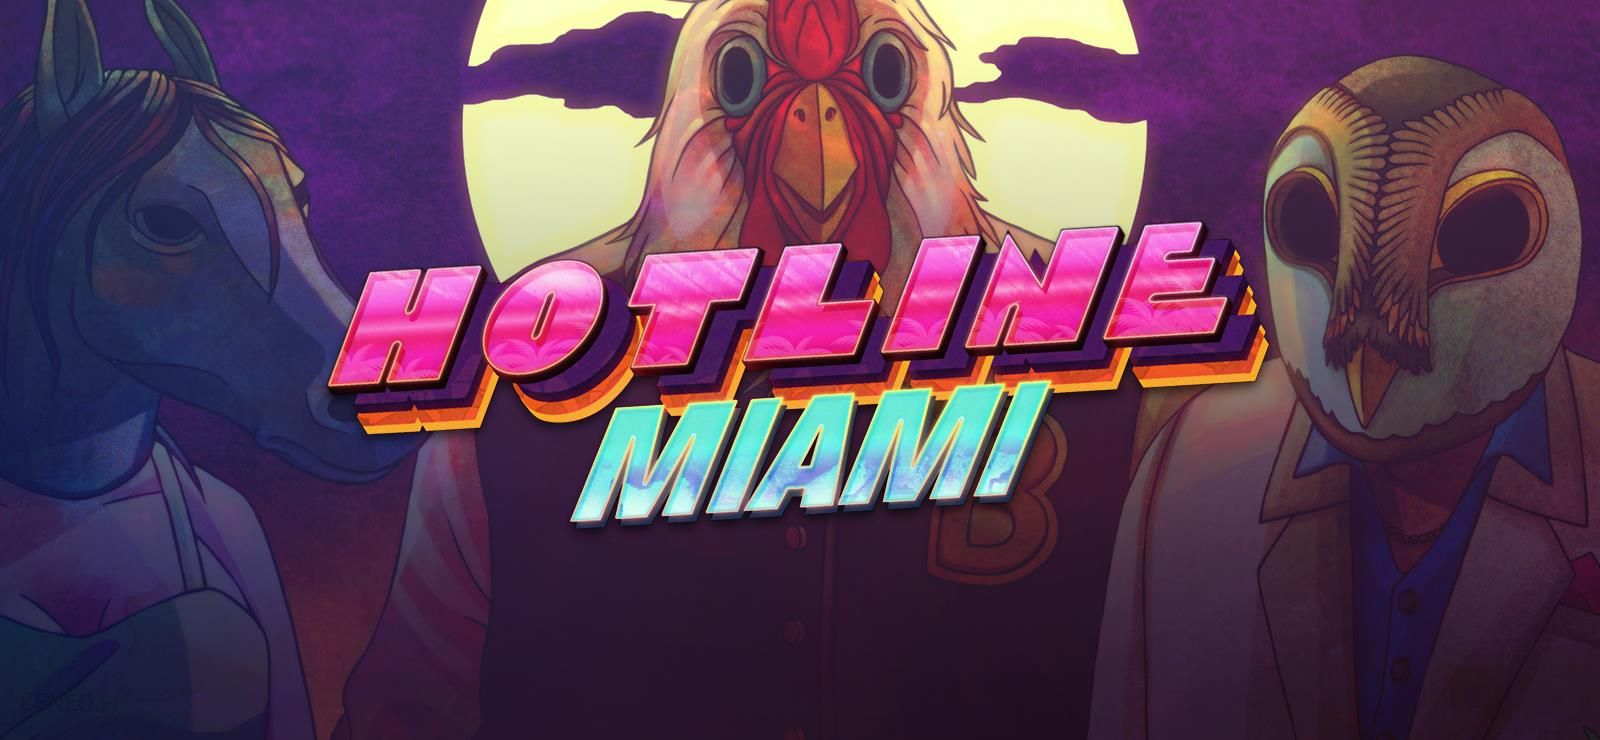 Photo of Hotline Miami – Masakra w klimacie lat '80 – recenzja